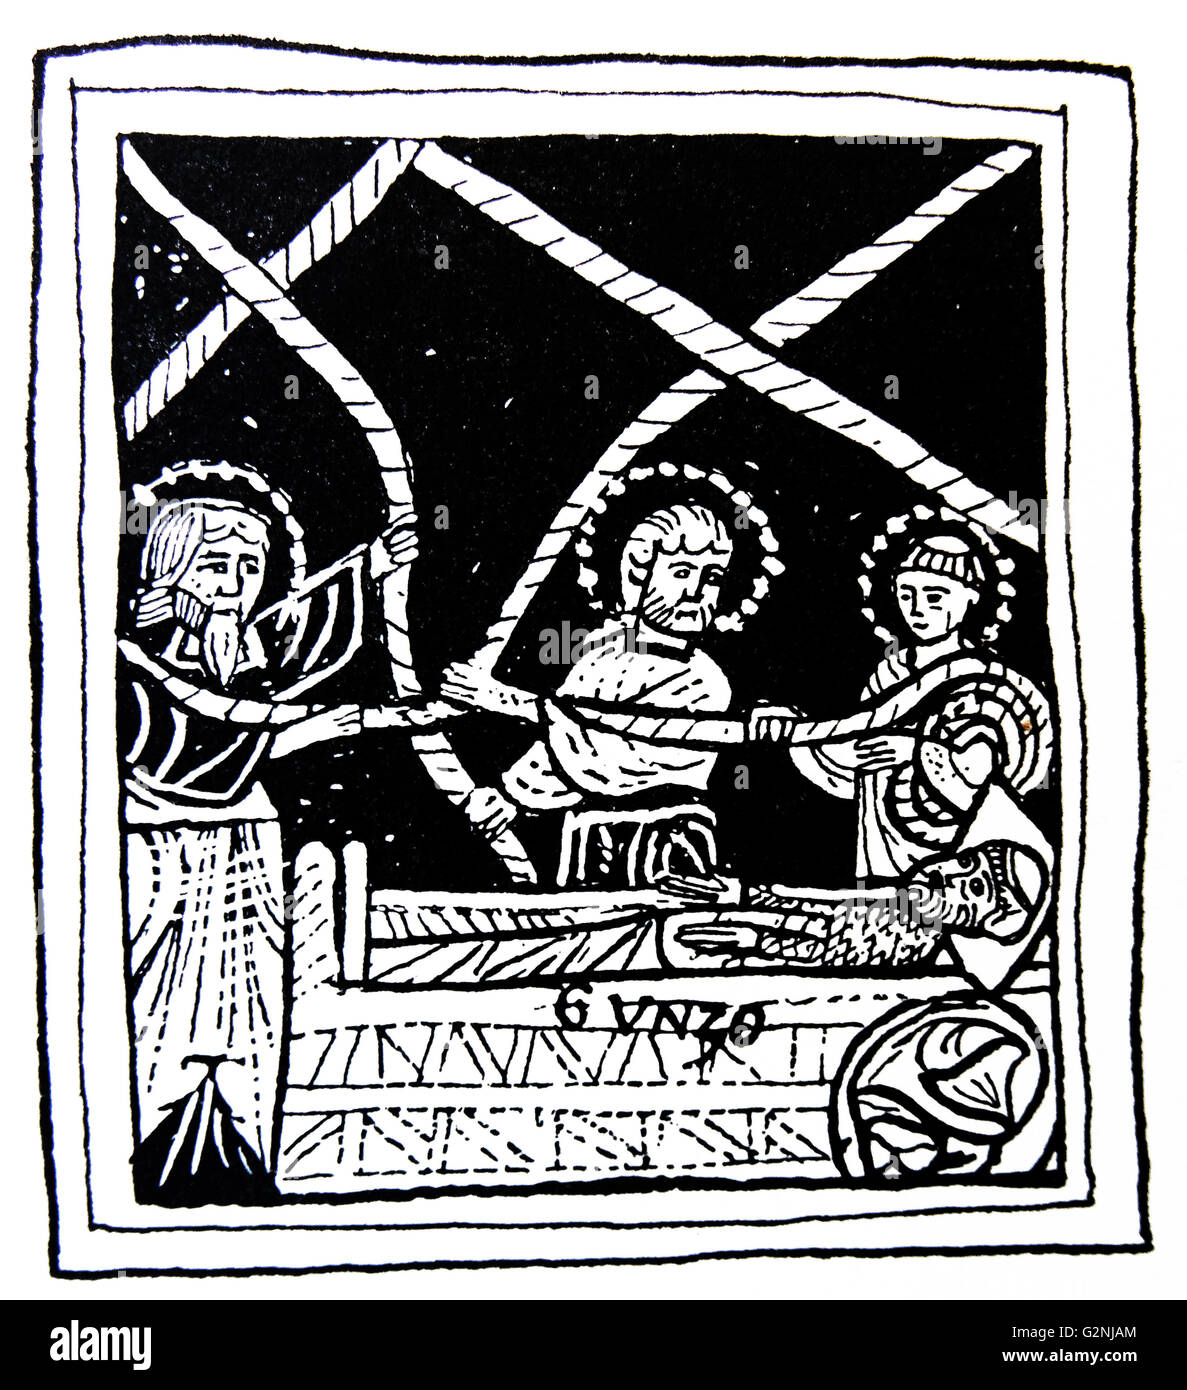 Illustration depicting the Monk Gunzo laying a stick in bed with Abbot Hugh of Cluny and his dream - Stock Image